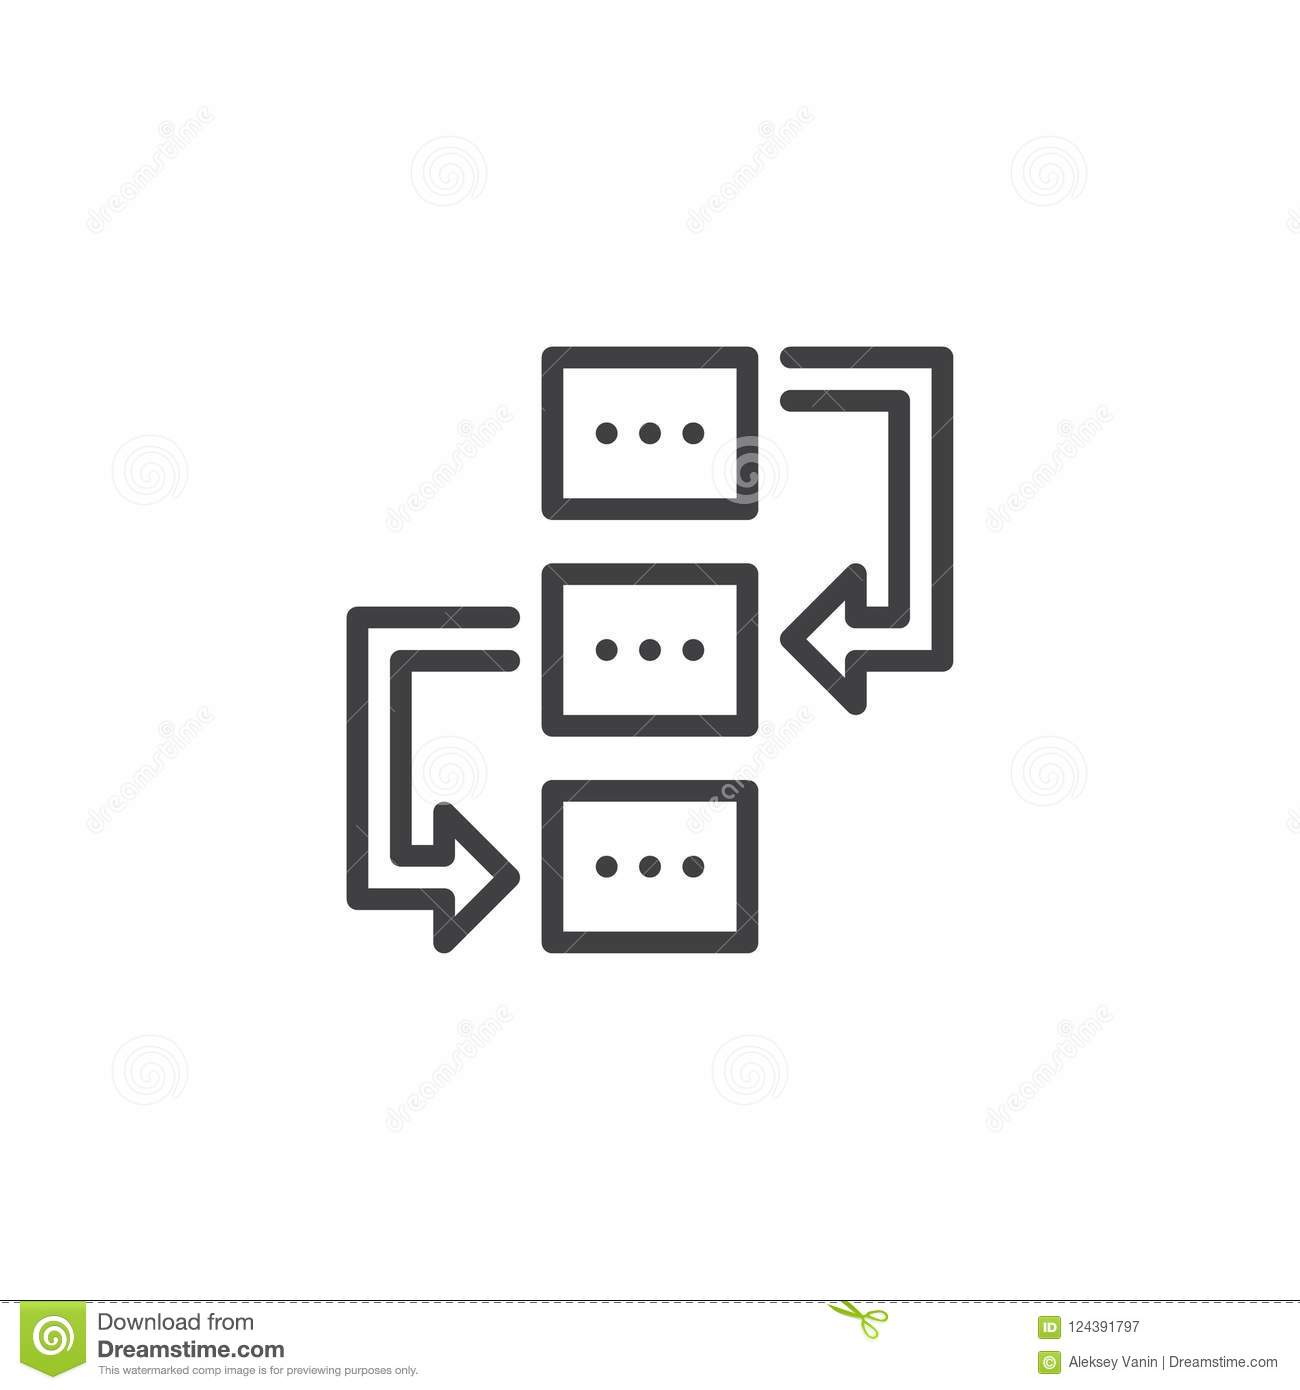 Workflow outline icon stock vector. Illustration of